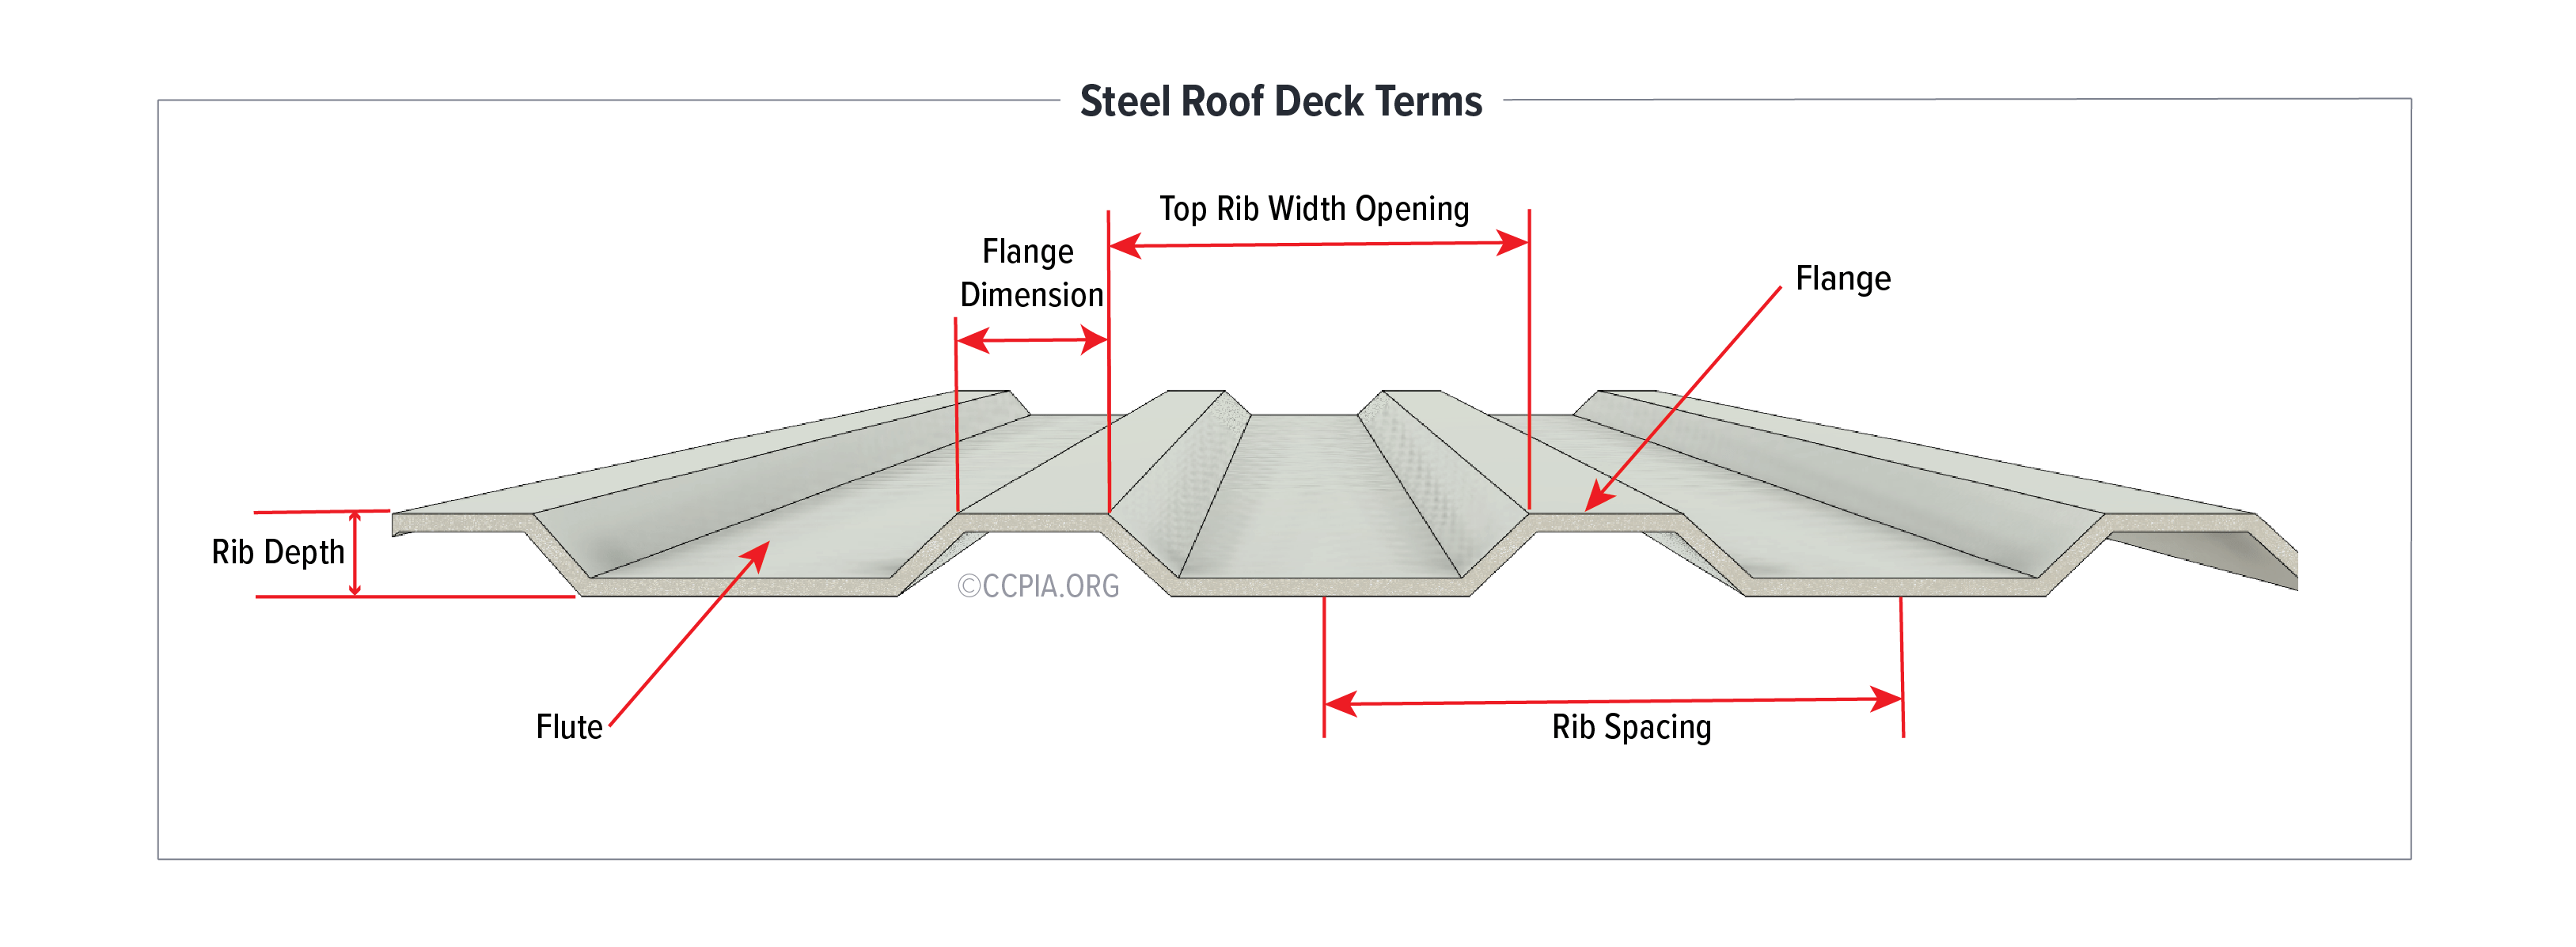 Steel Roof Deck Terms Inspection Gallery Internachi 174